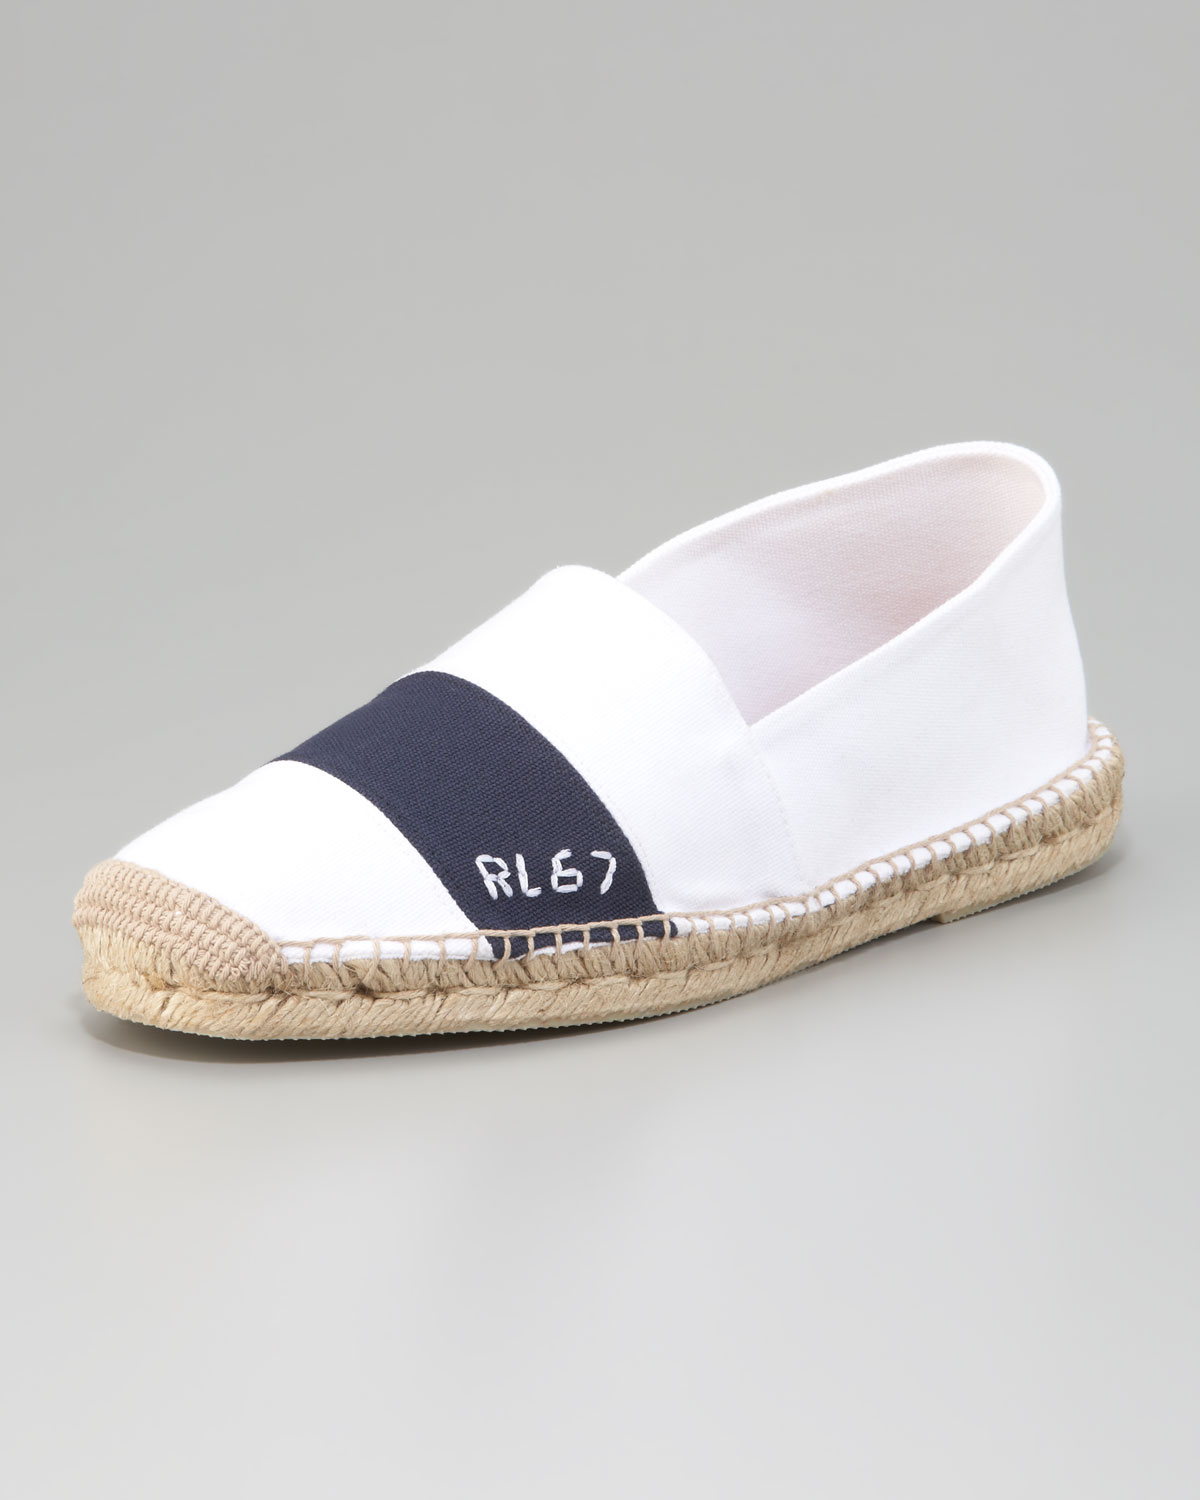 ralph lauren striped canvas espadrille in white for men lyst. Black Bedroom Furniture Sets. Home Design Ideas